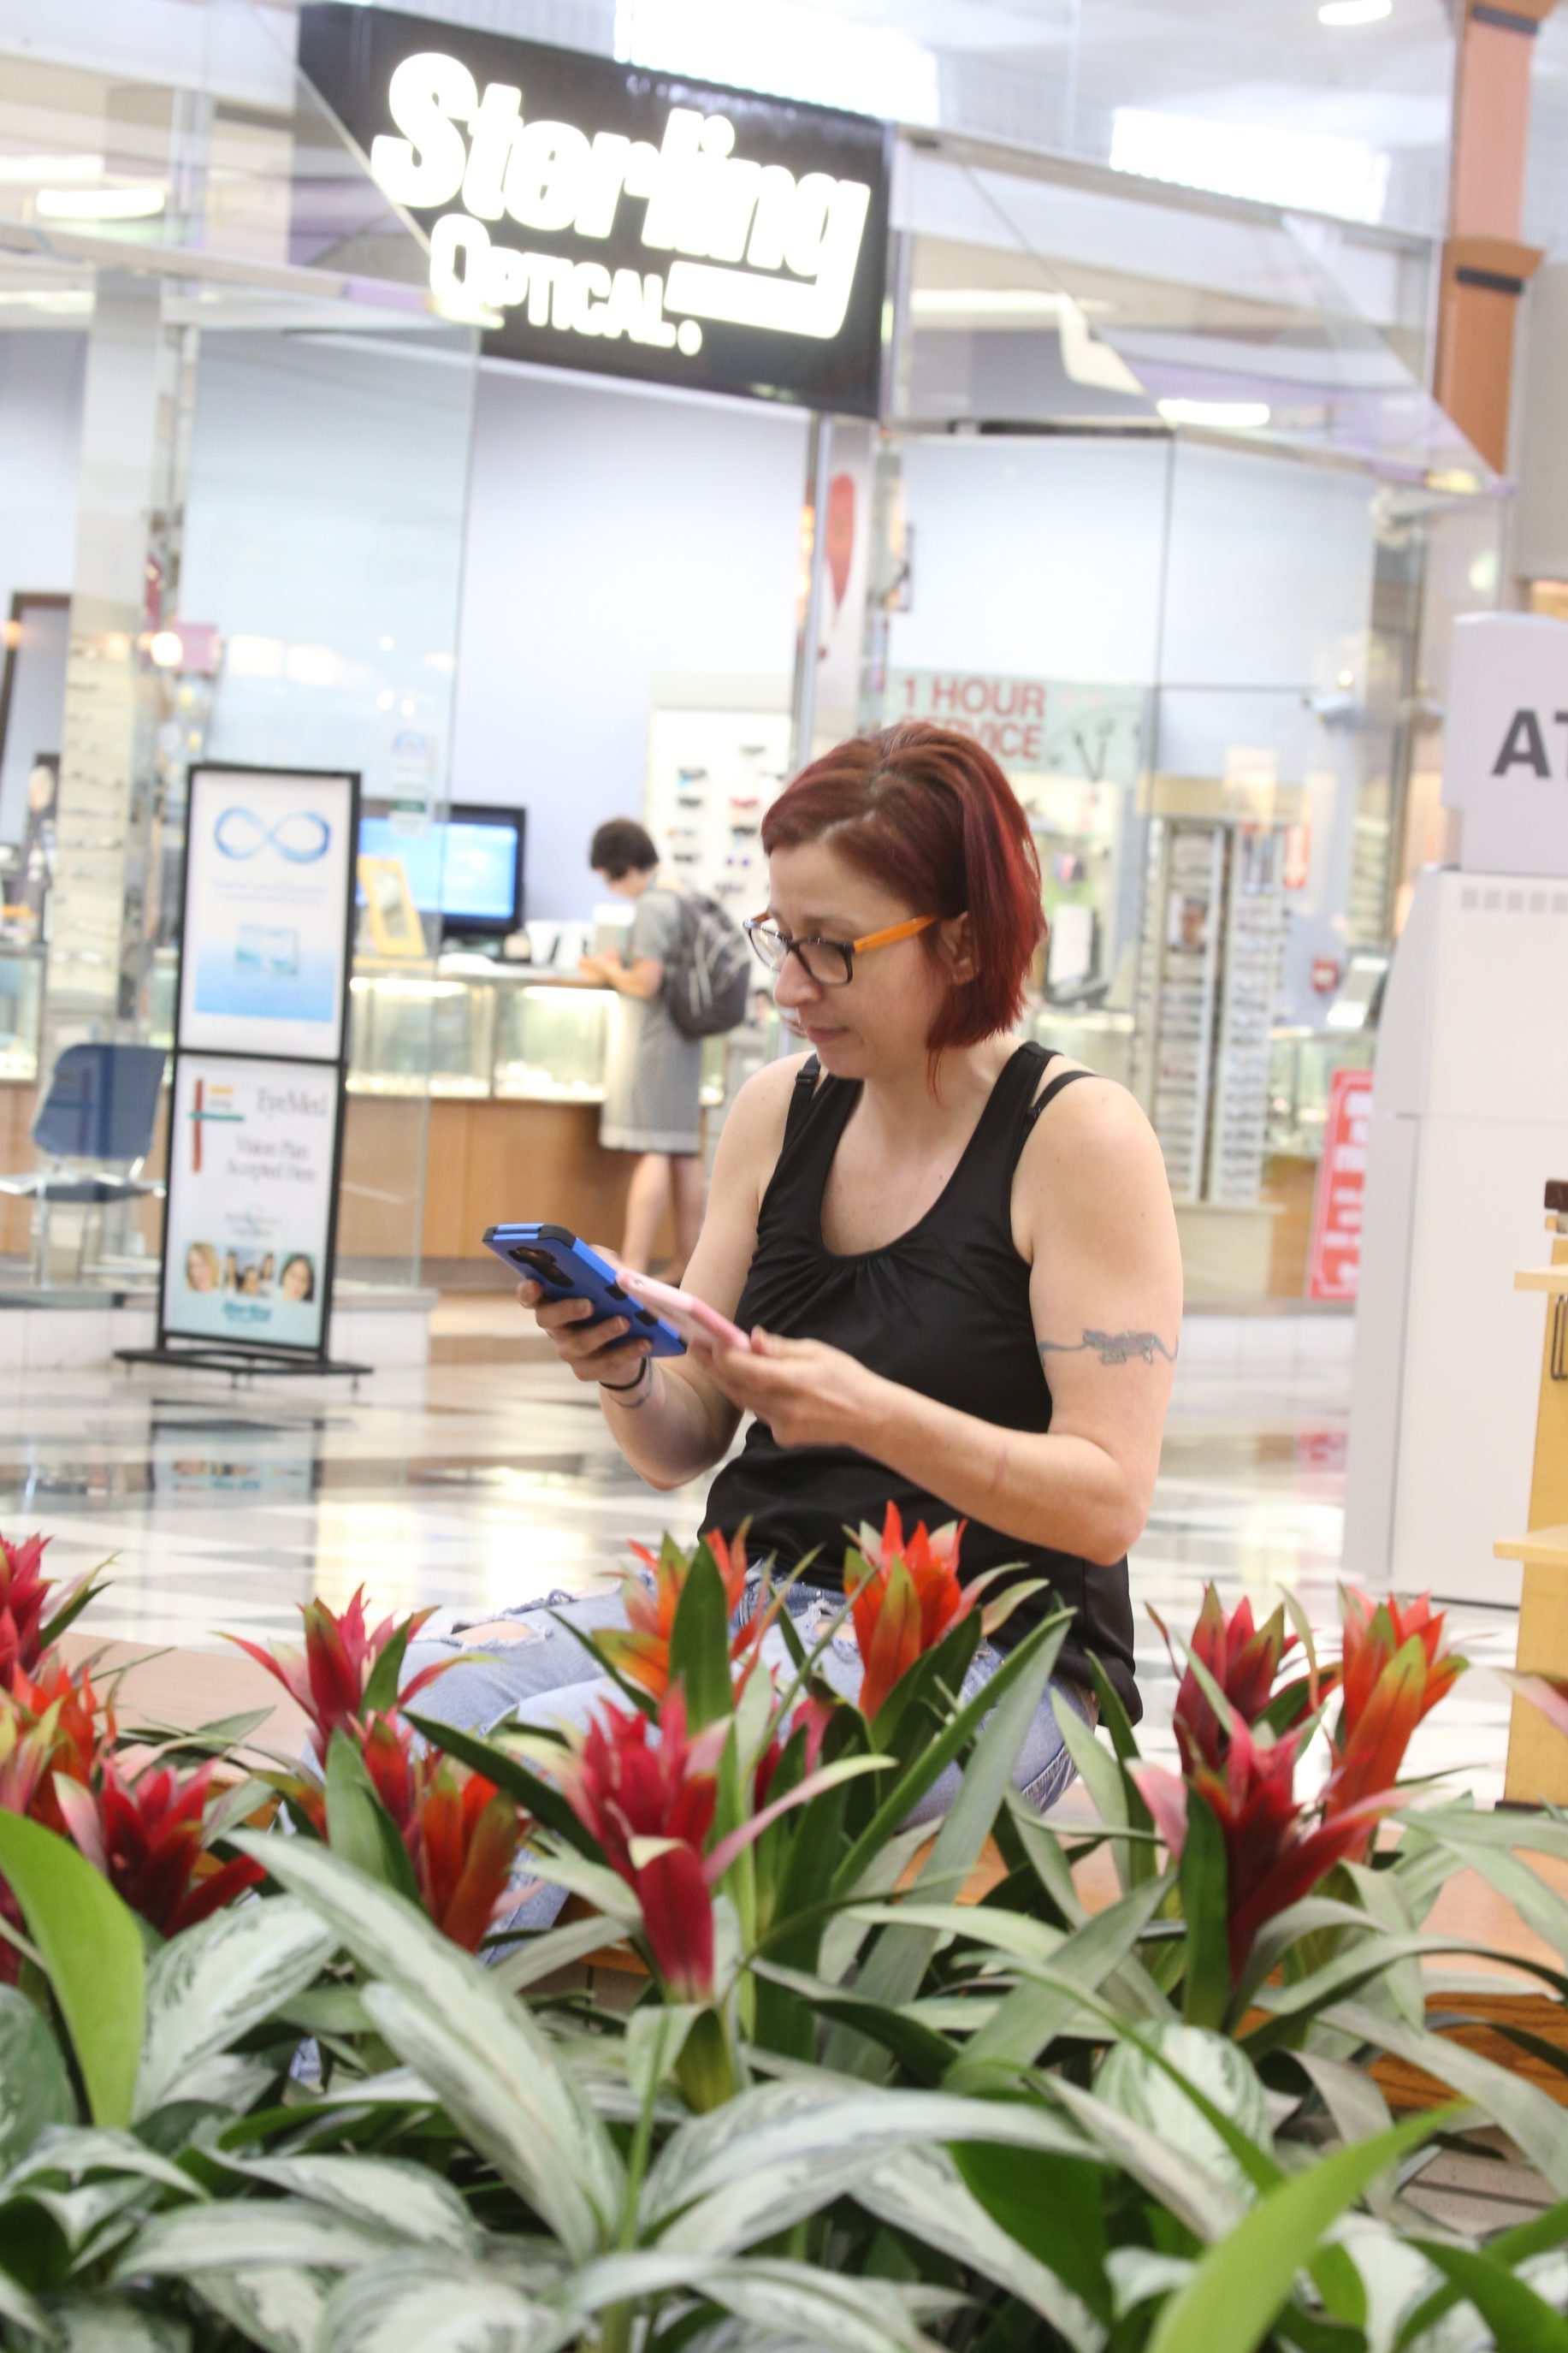 The Pokemon Go craze over the summer was a boon for the mall. Here Kim Giddings-Aravinthan of Amherst is on the hunt. (John Hickey/Buffalo News)